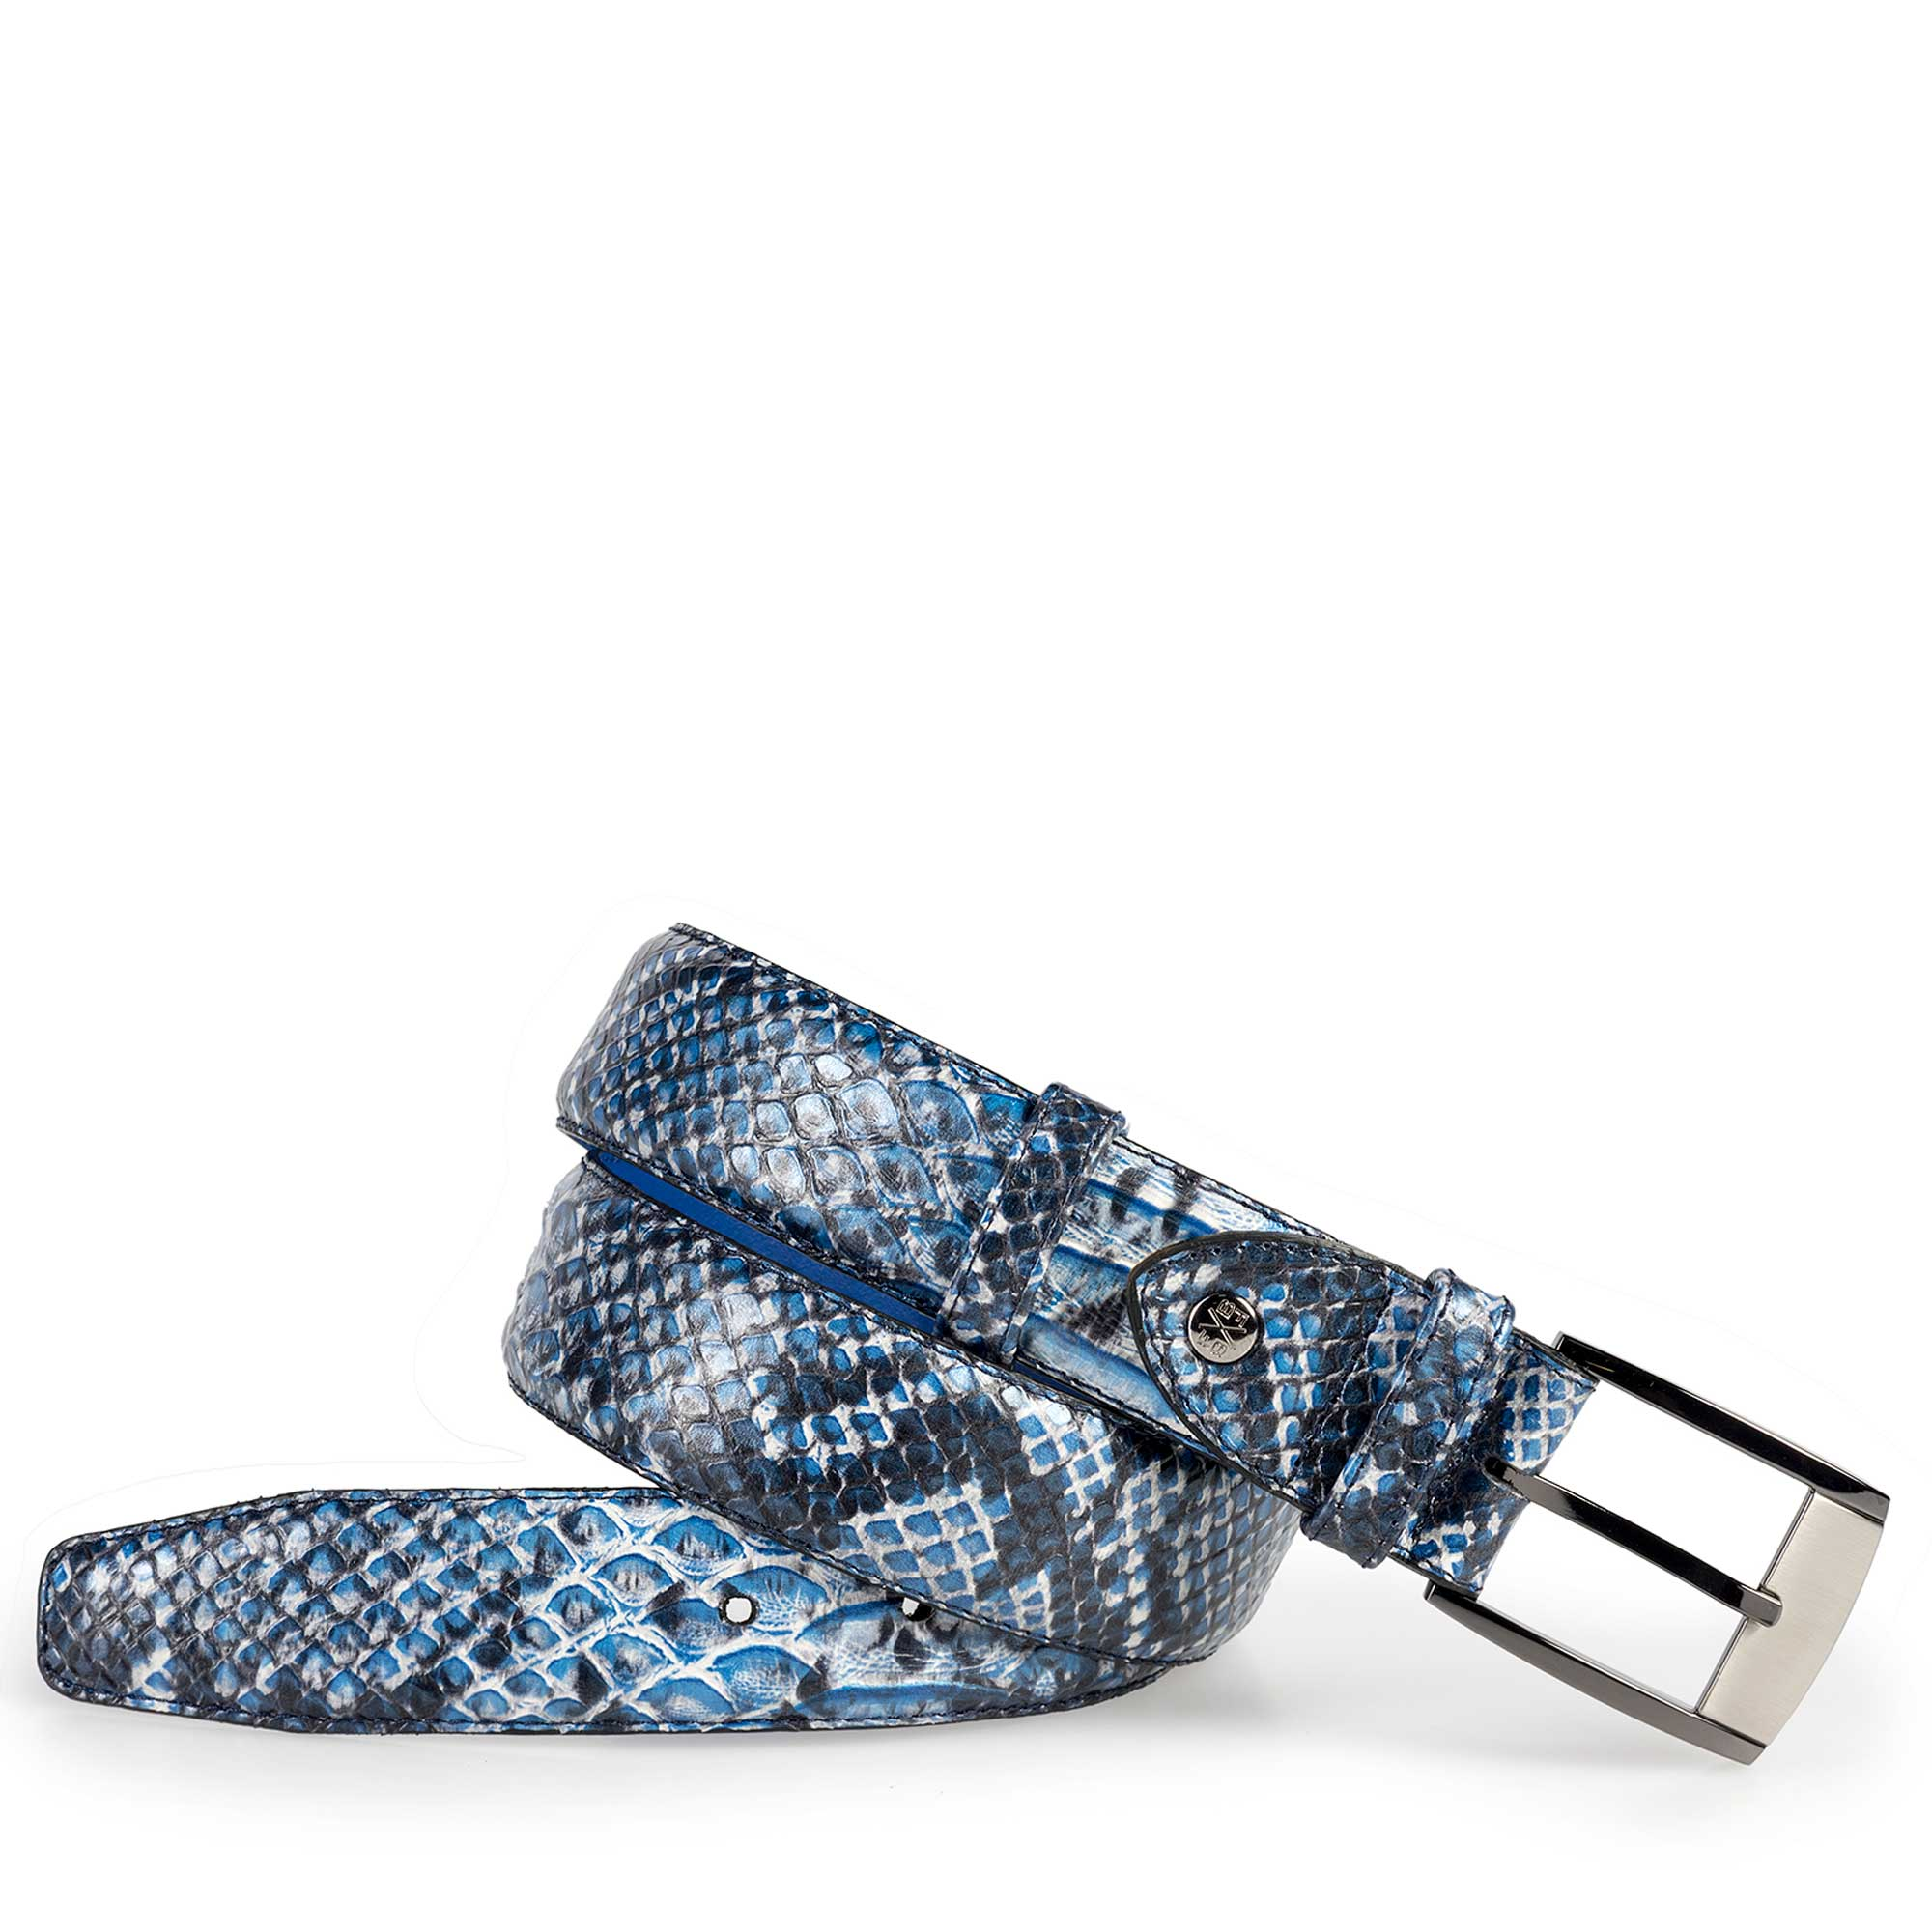 75180/28 - Blue calf's leather belt with a snake pattern